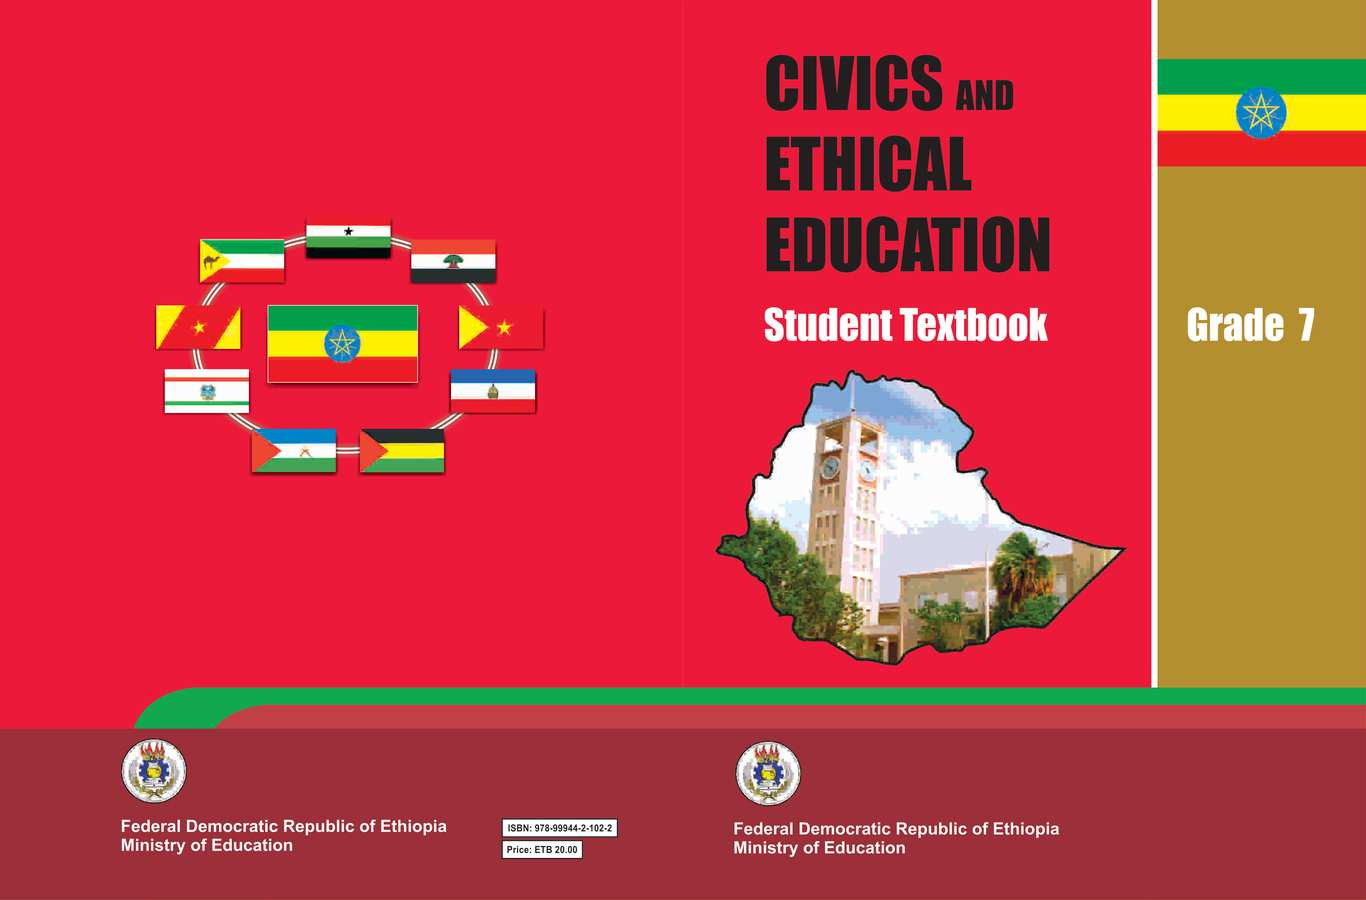 Civics and Ethical Education grade 7                                  page 1